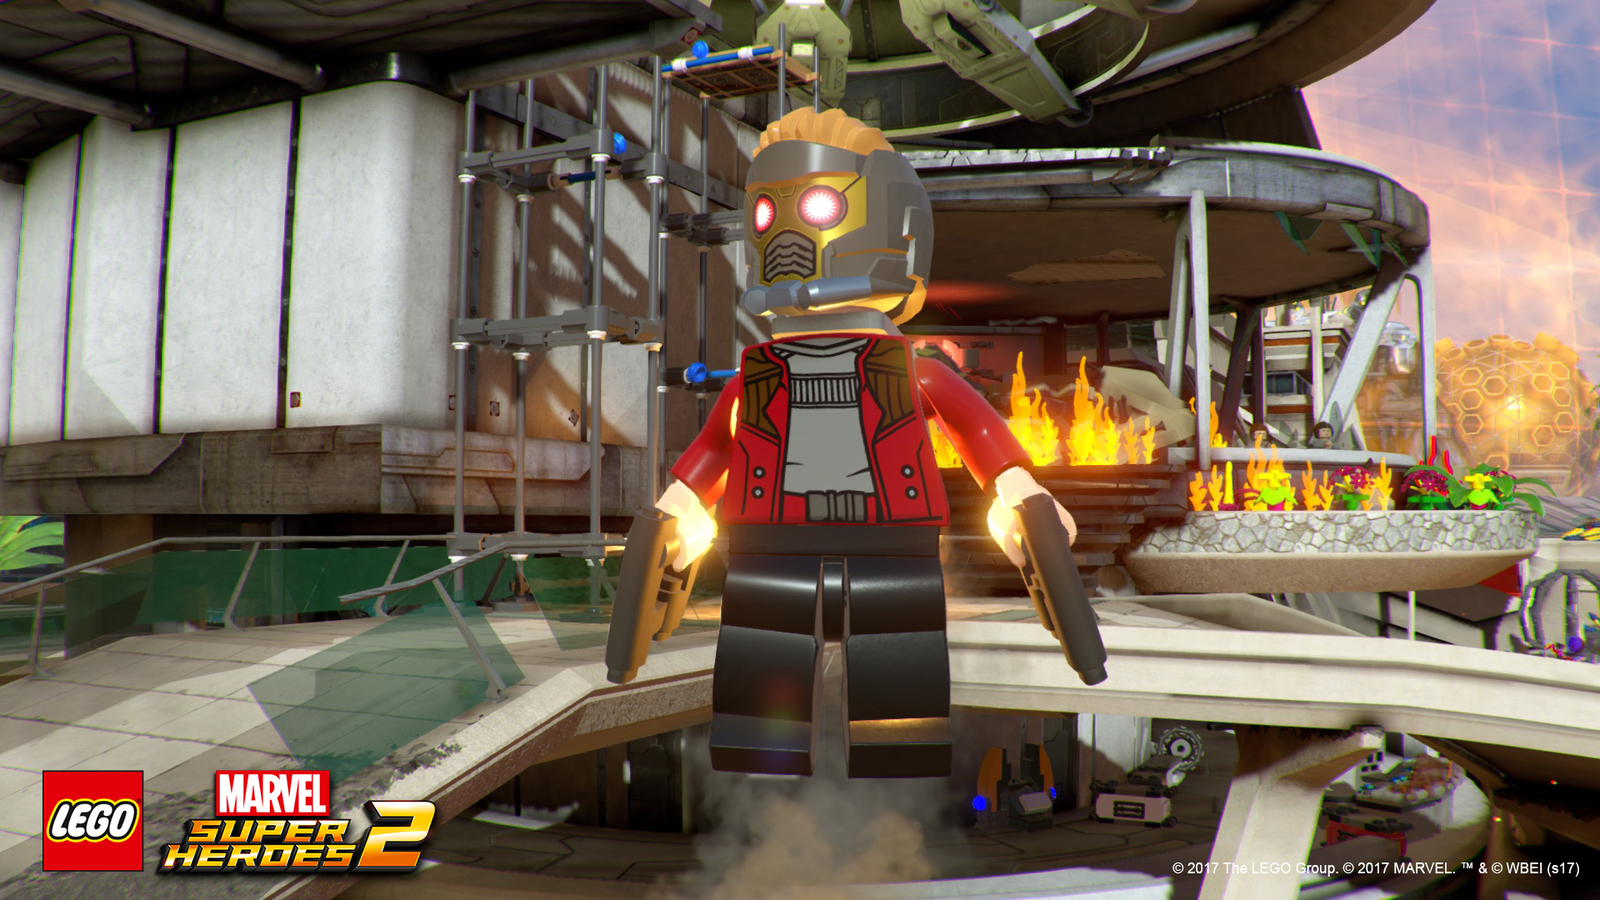 LEGO Marvel Super Heroes 2 for PS4 image